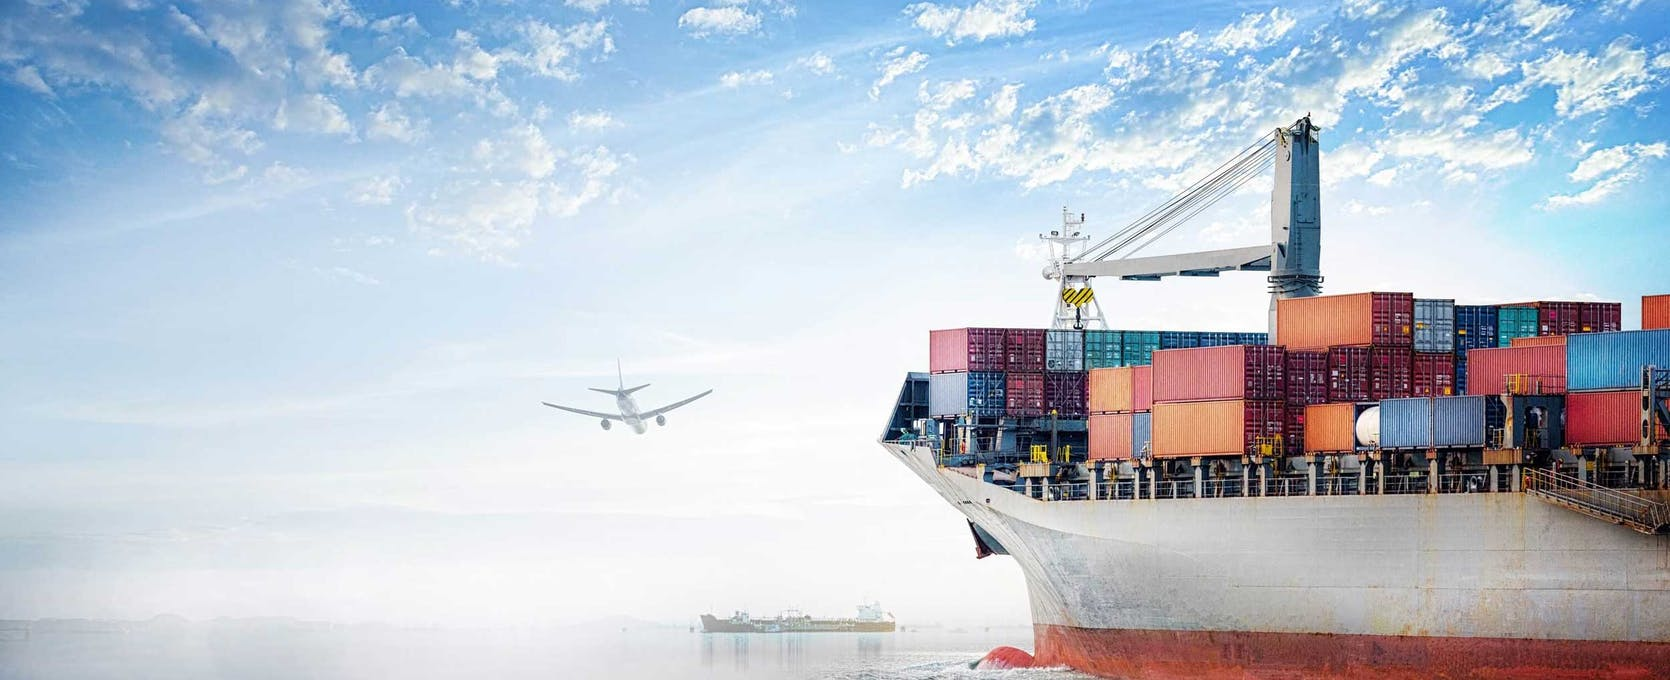 International supply chain, air and shipping